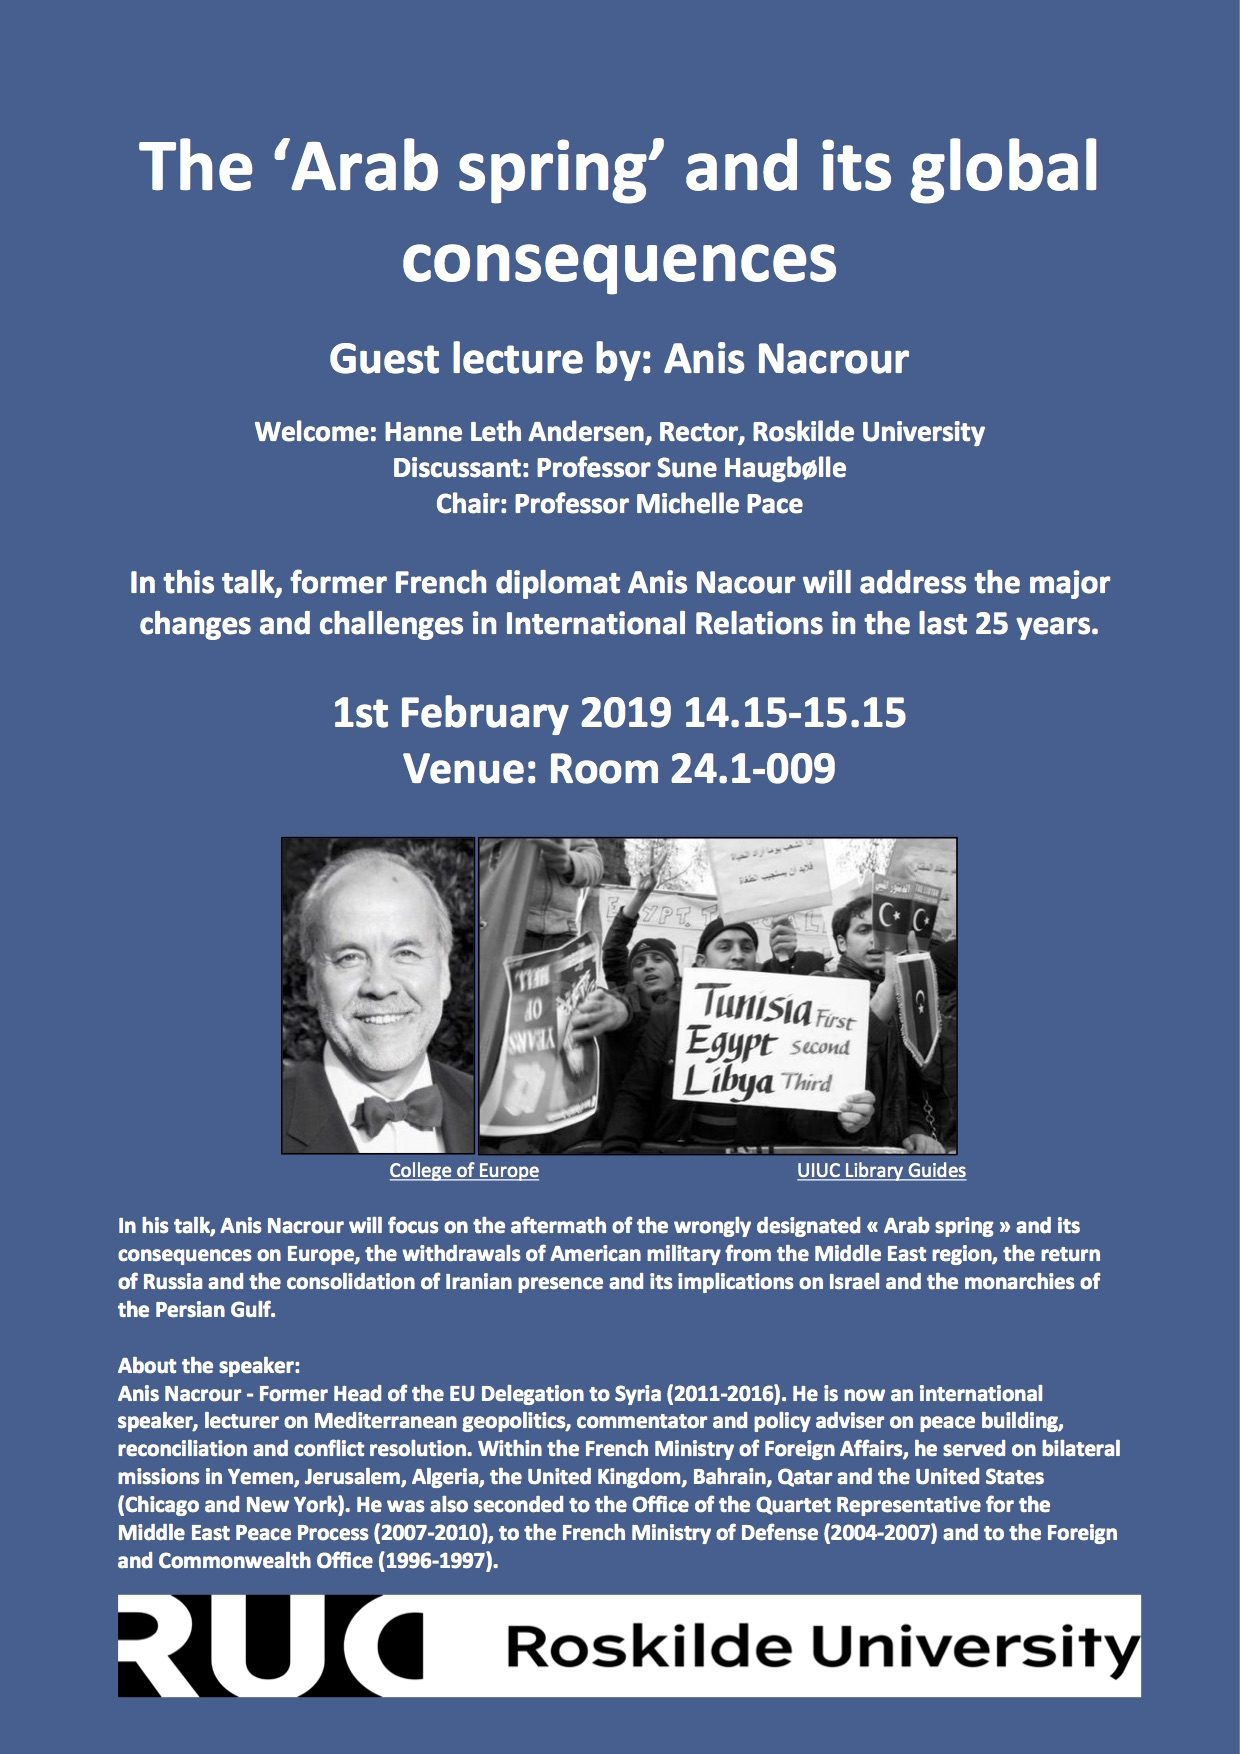 """Guest lecture: Anis Nacrour """"The 'Arab Spring' and its Global Consequences"""" – Roskilde, 1 February 2019"""